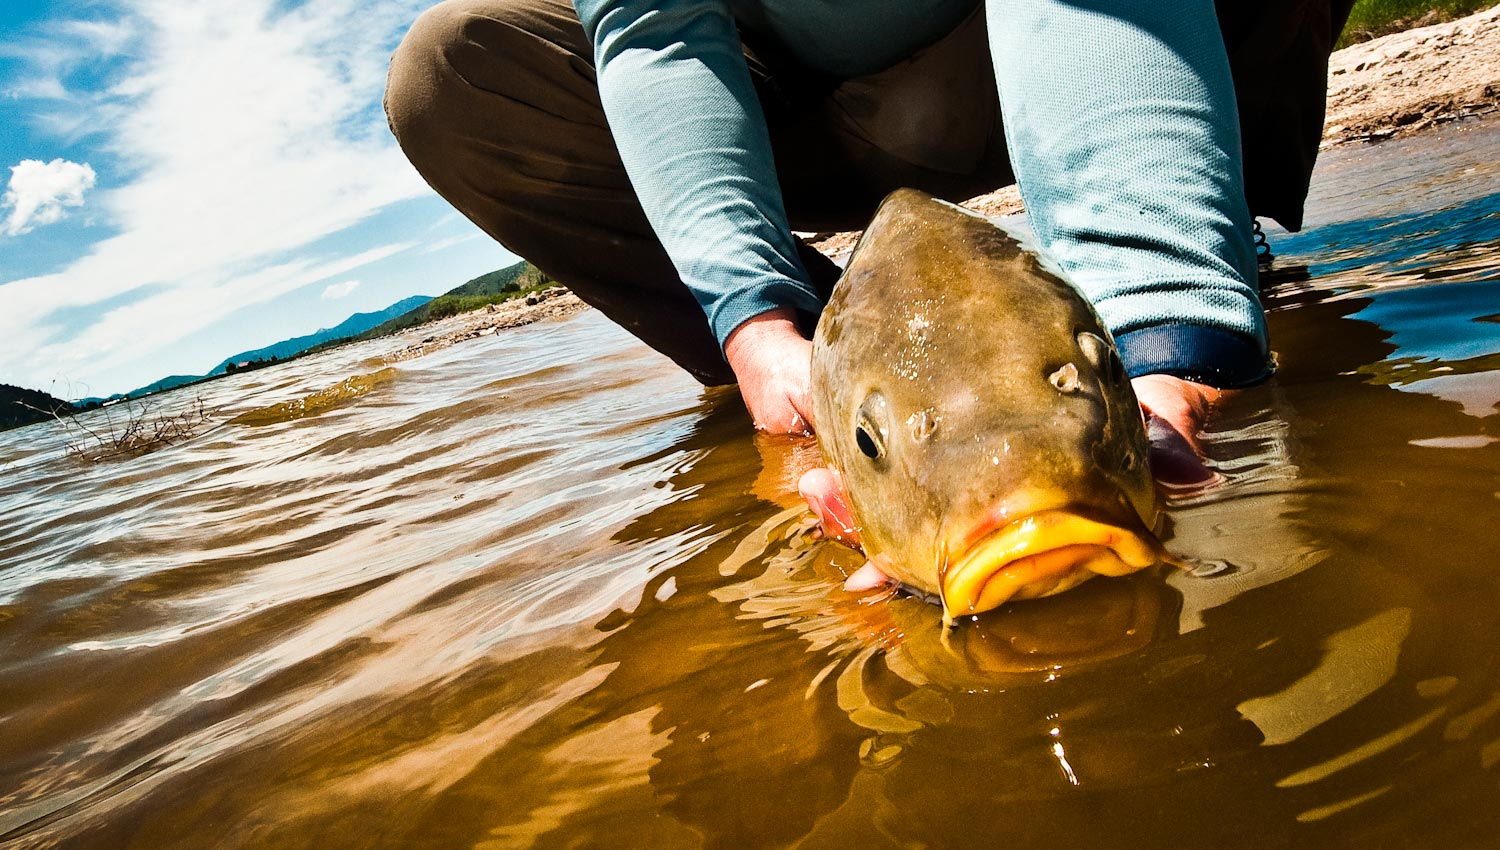 carp on the fly - 12 q&a's to get you ready | fly fishing | gink, Fly Fishing Bait